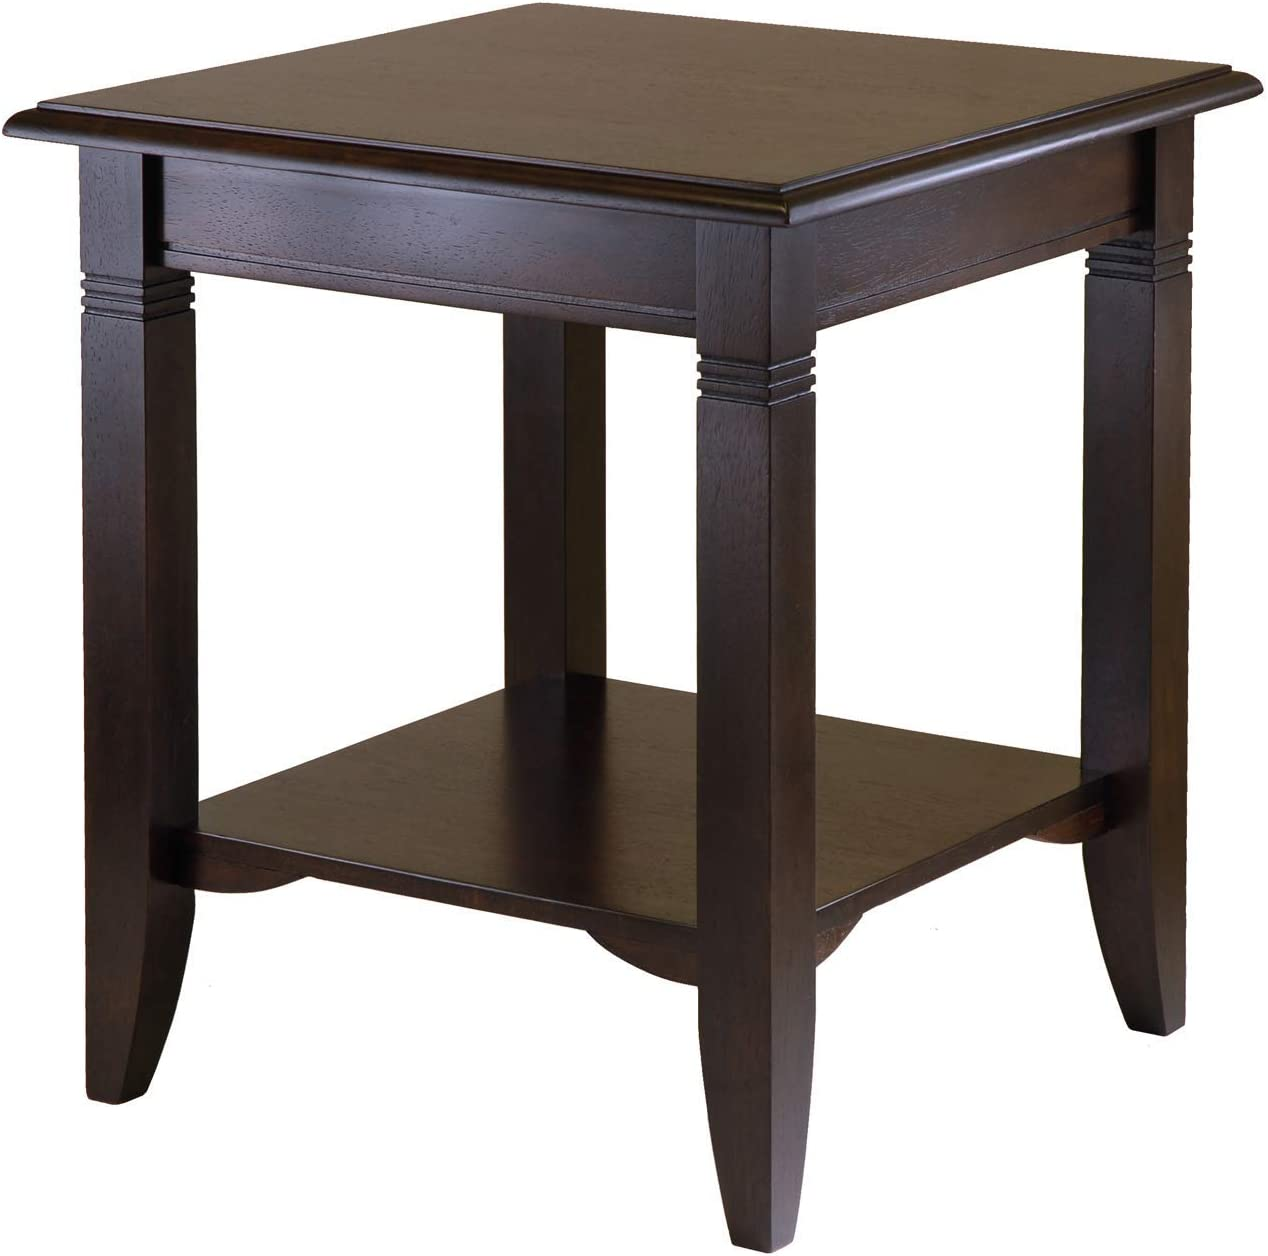 Winsome Wood 40220 Nolan Occasional Table Pack of 3 Cappuccino